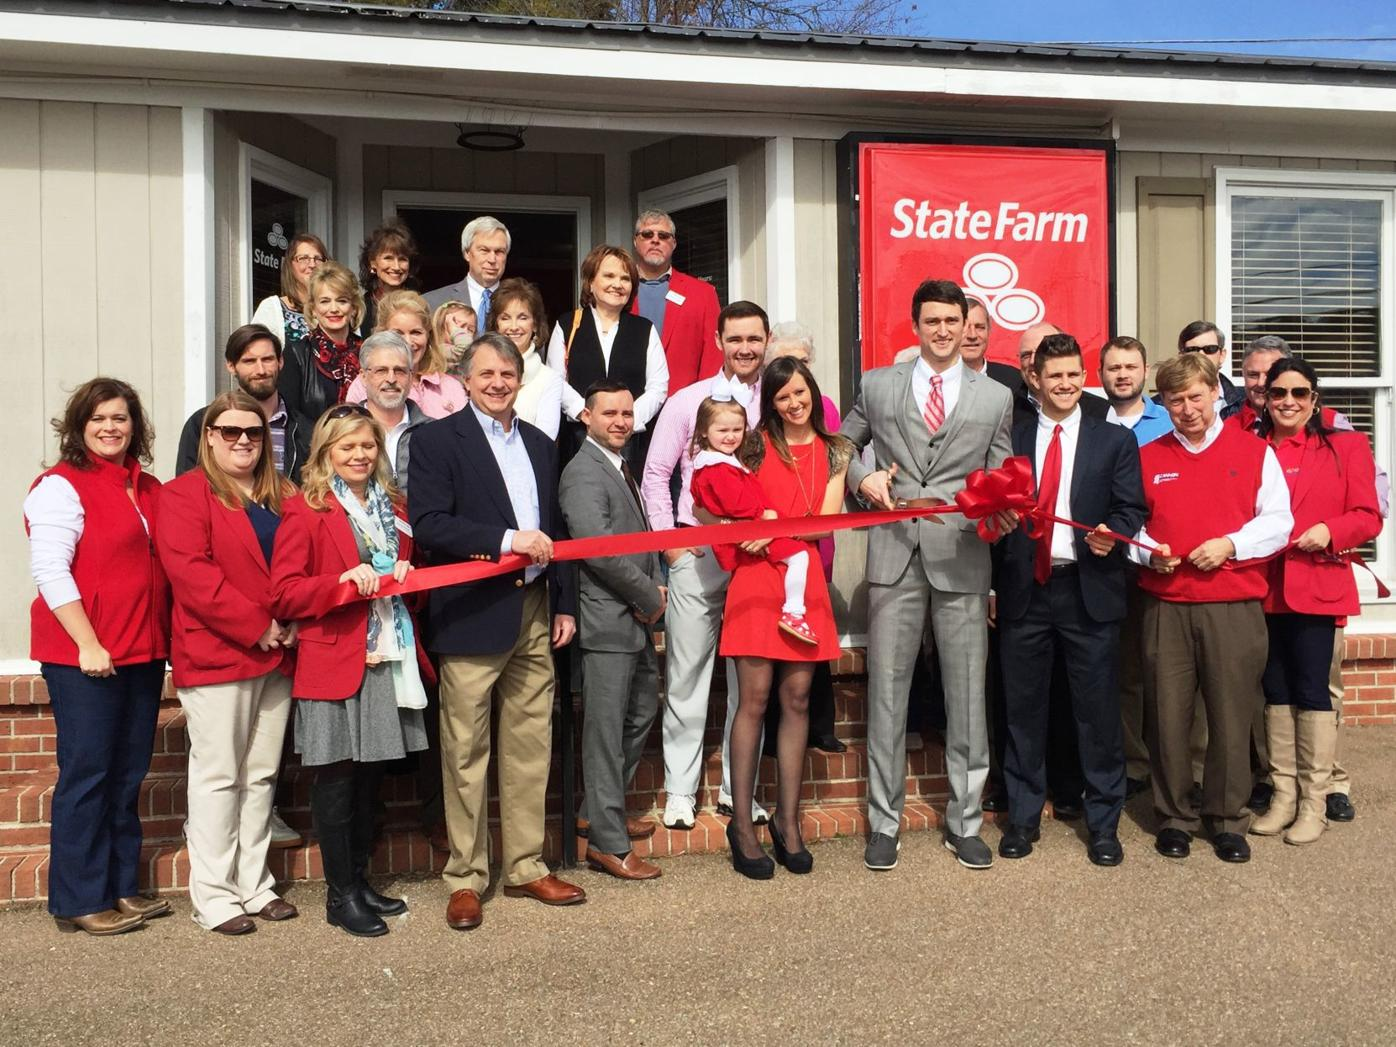 ribbon cutting will poole state farm business djournal com ribbon cutting will poole state farm